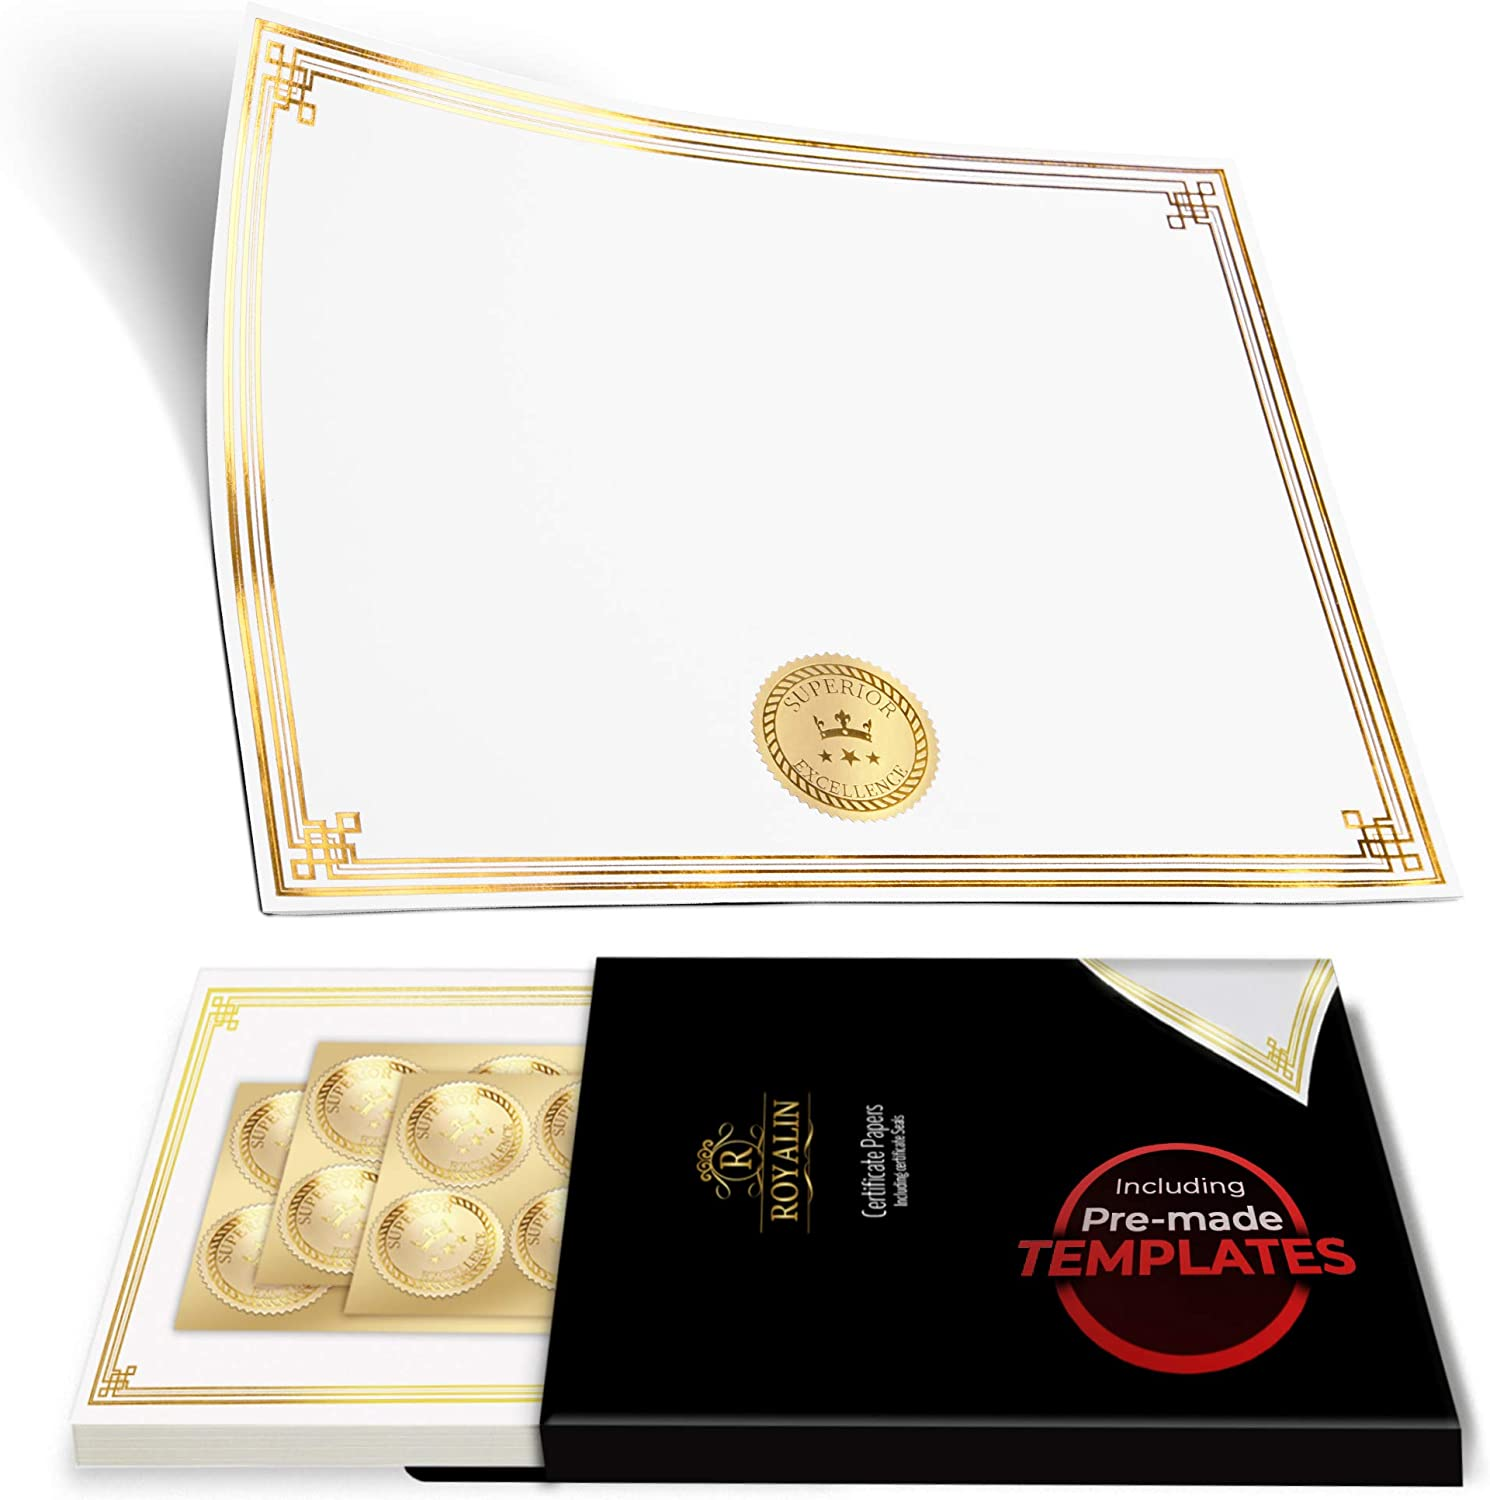 100 Professional Award Certificate Paper 8.5 x 11 with Seals, Gold Foil Border, Blank. Laser, Inkjet Printable 71qv4-3AARL